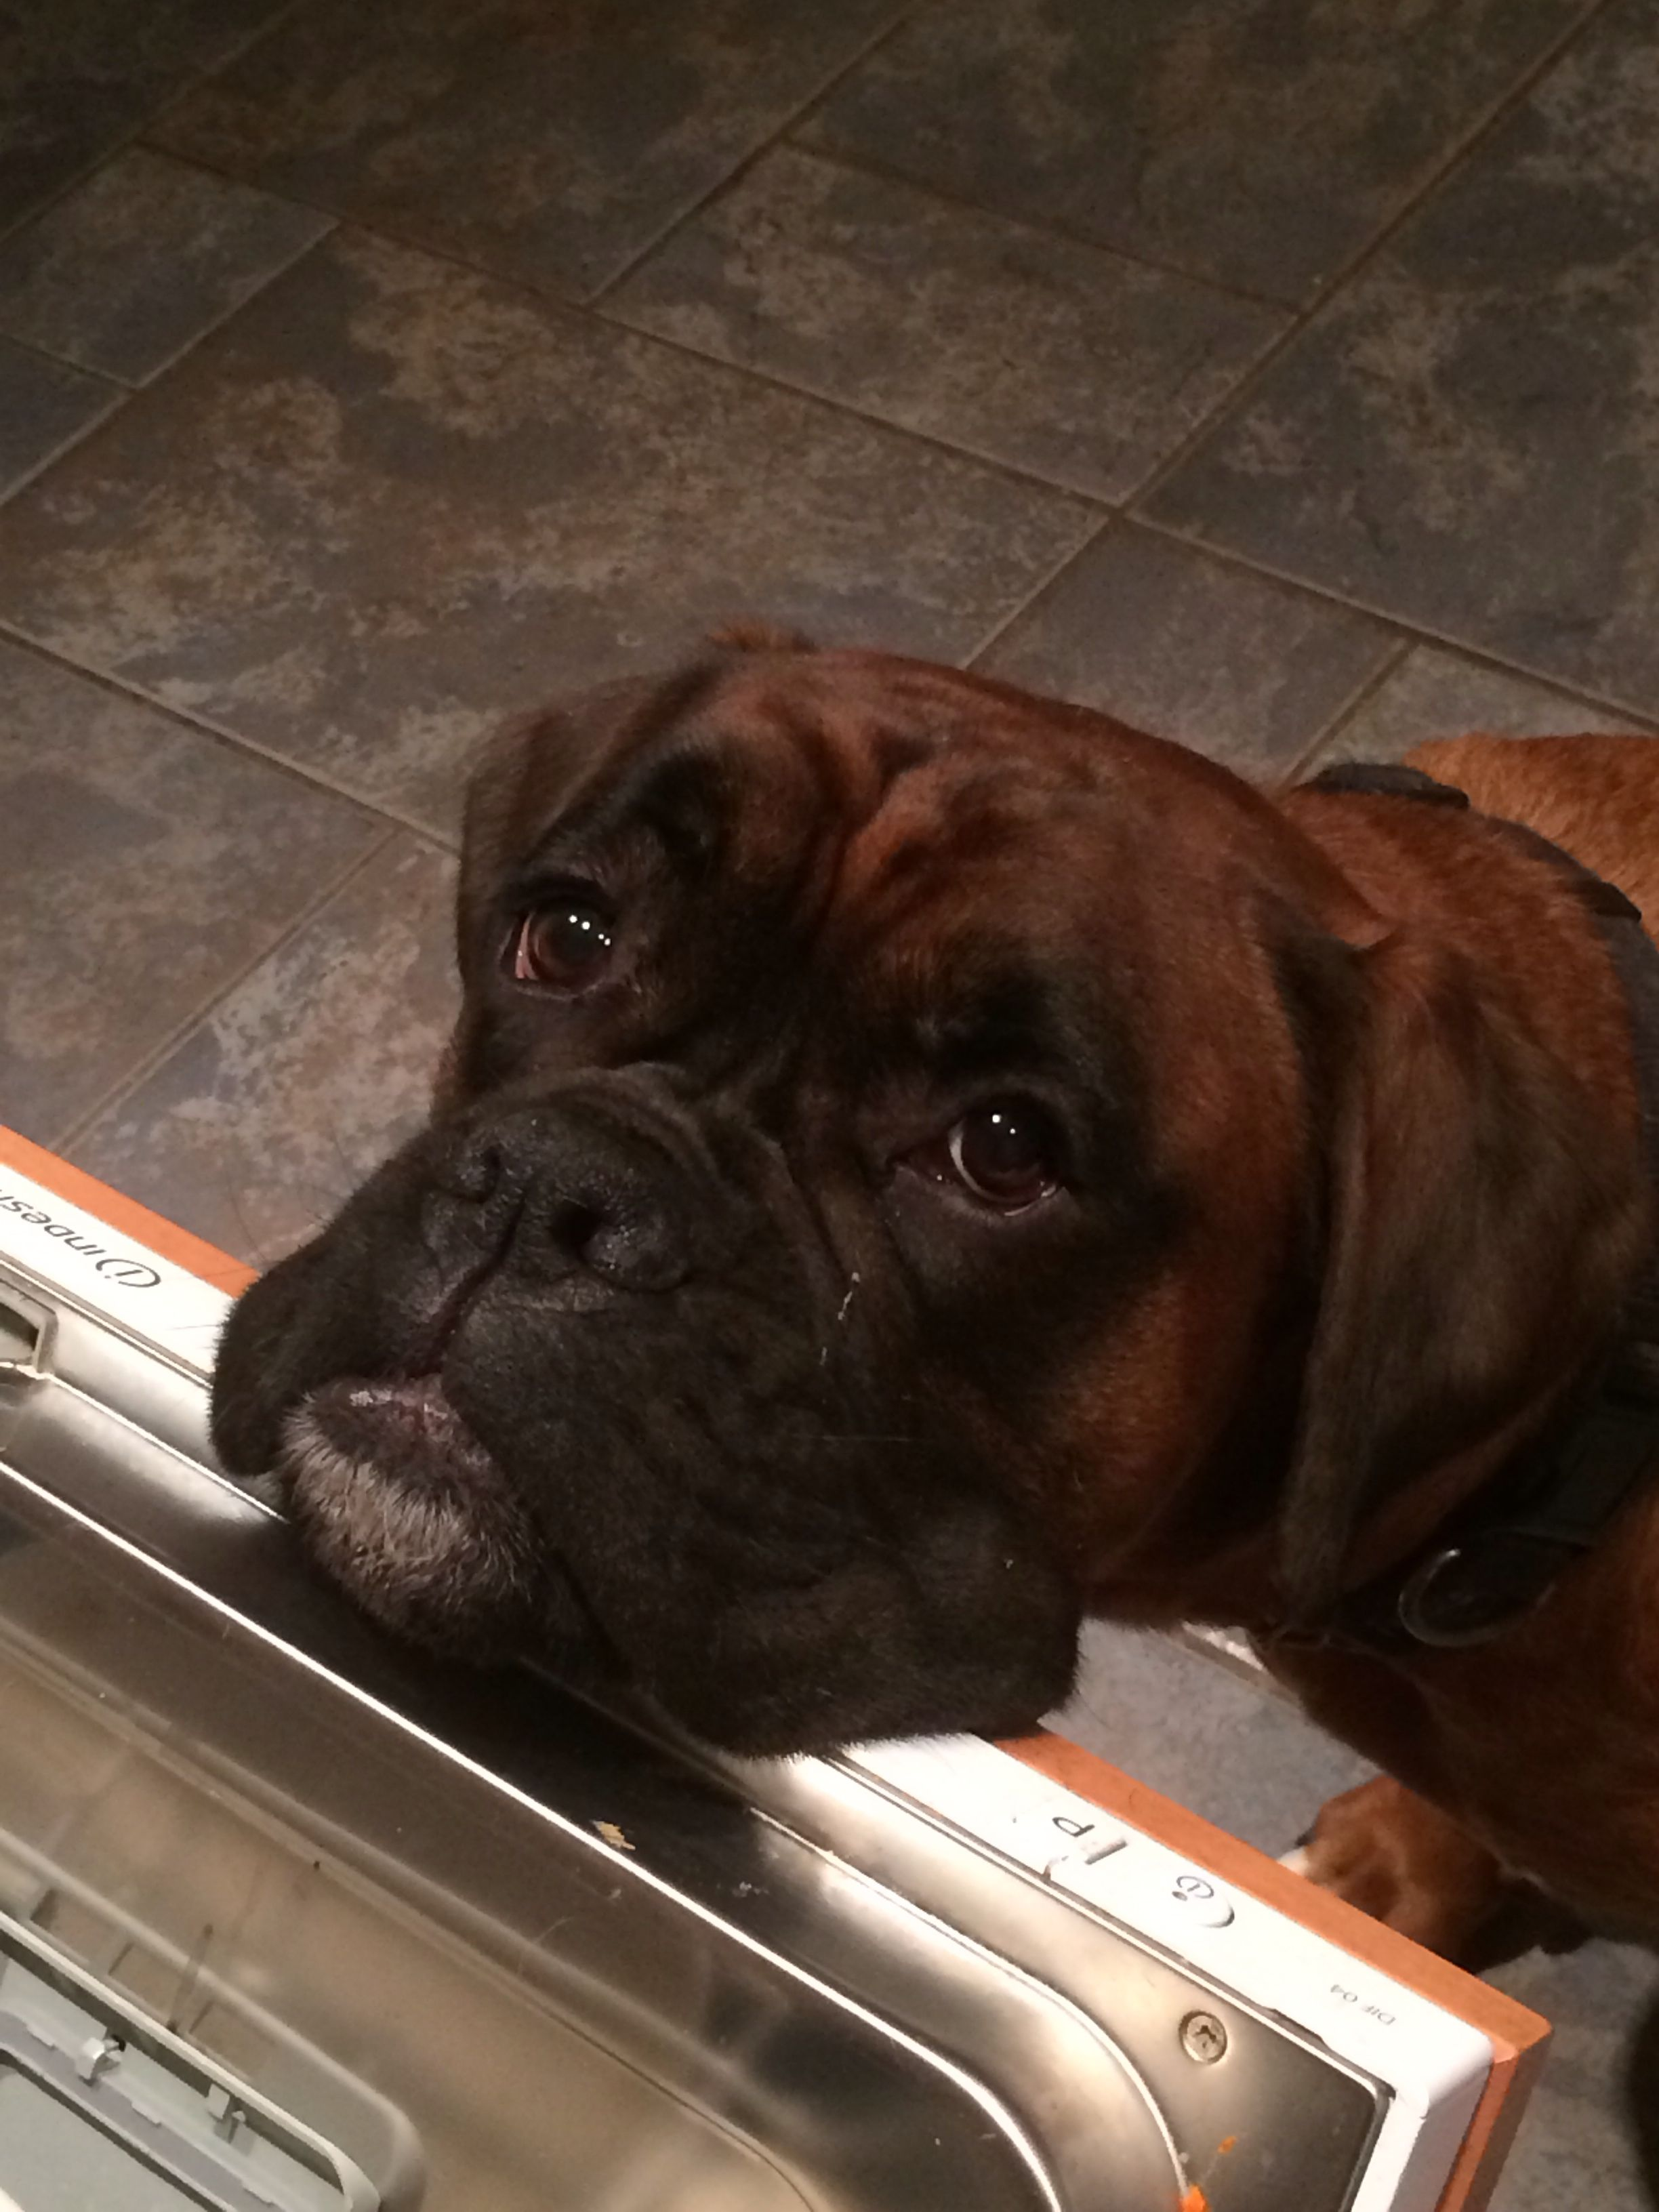 Mum Please Let Me Clean The Dishes Lol Boxer Dogs Boxer Breed Boxer Puppies